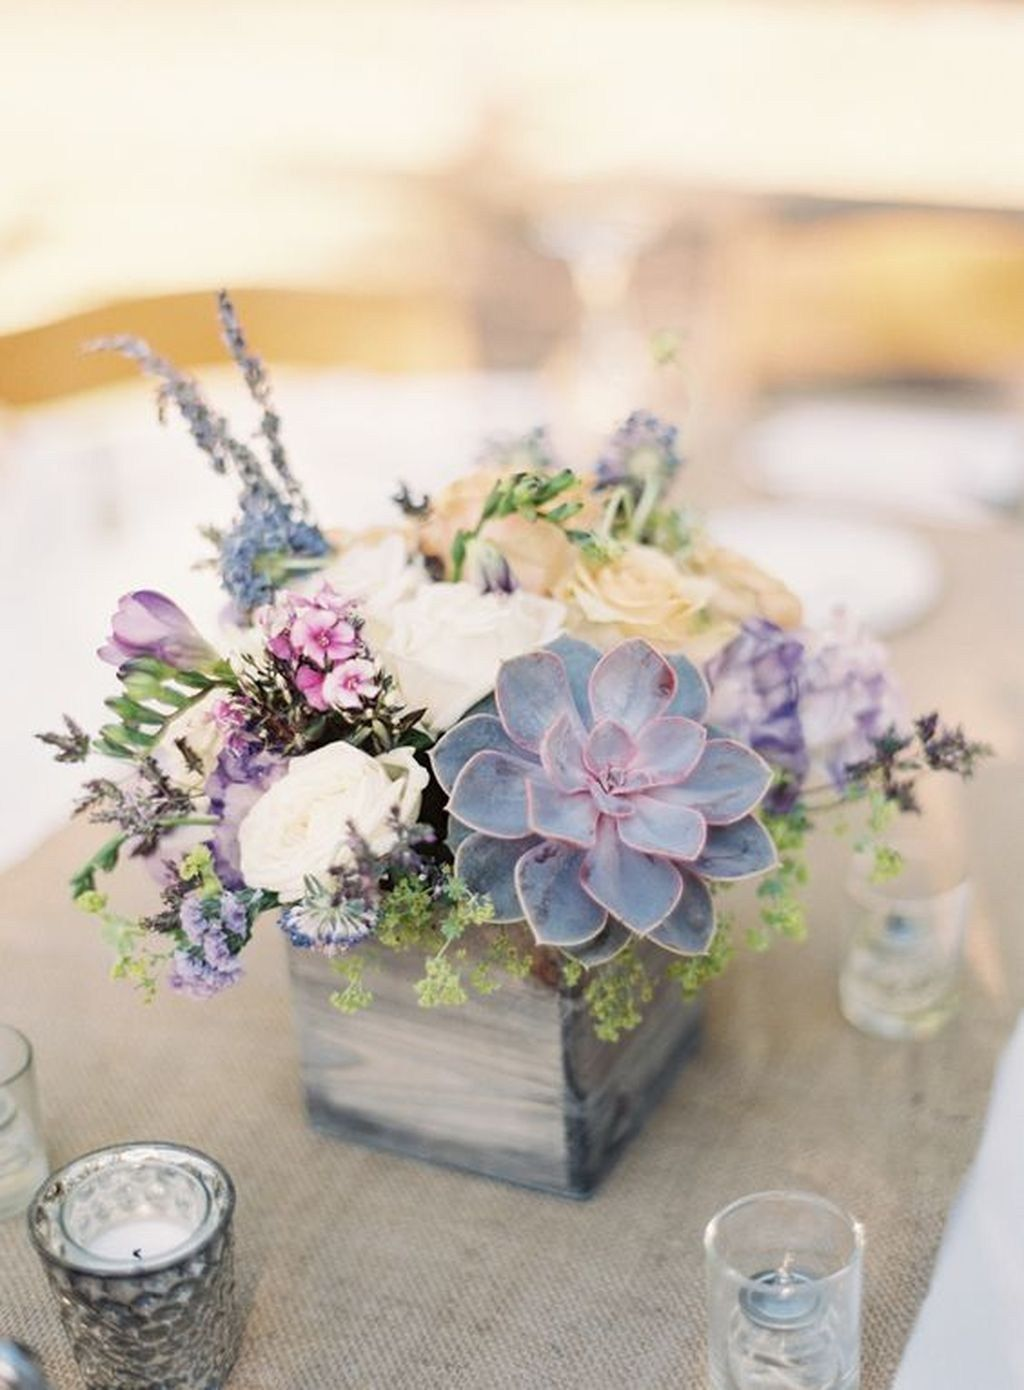 Romantic floral wedding decoration ideas for your special day